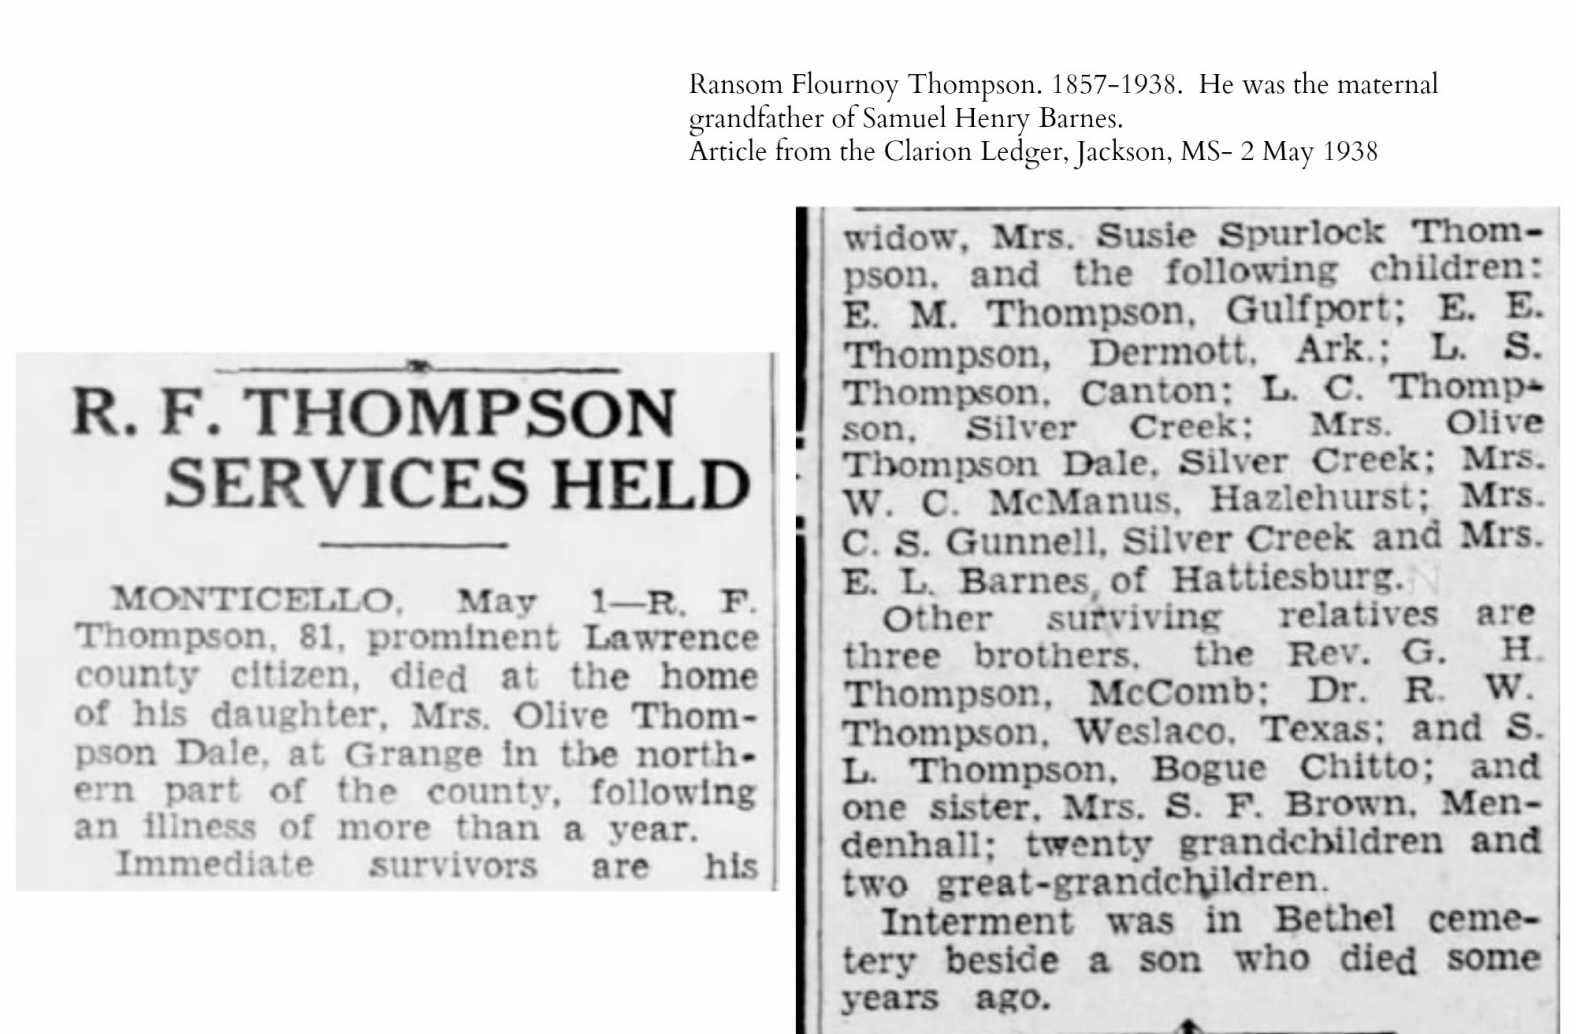 death of Ransom Flournoy Thompson